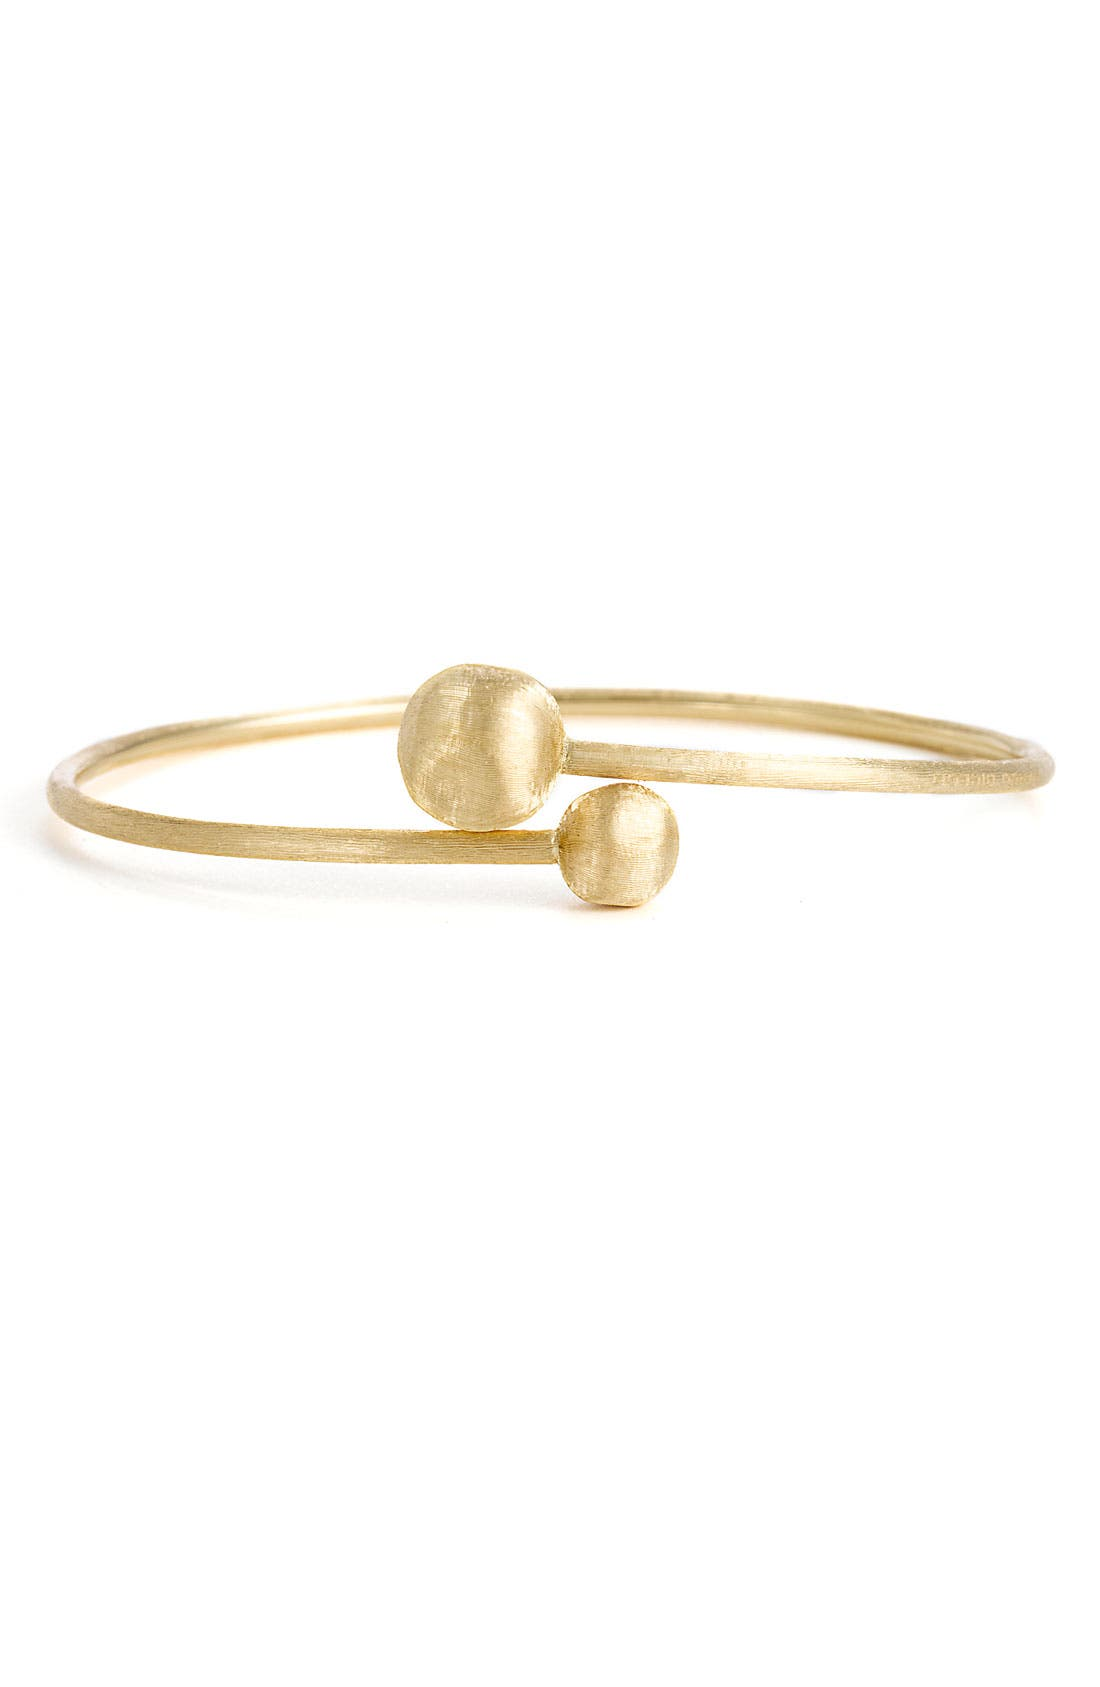 Alternate Image 1 Selected - Marco Bicego 'Africa Gold - Small Hugging' Bangle